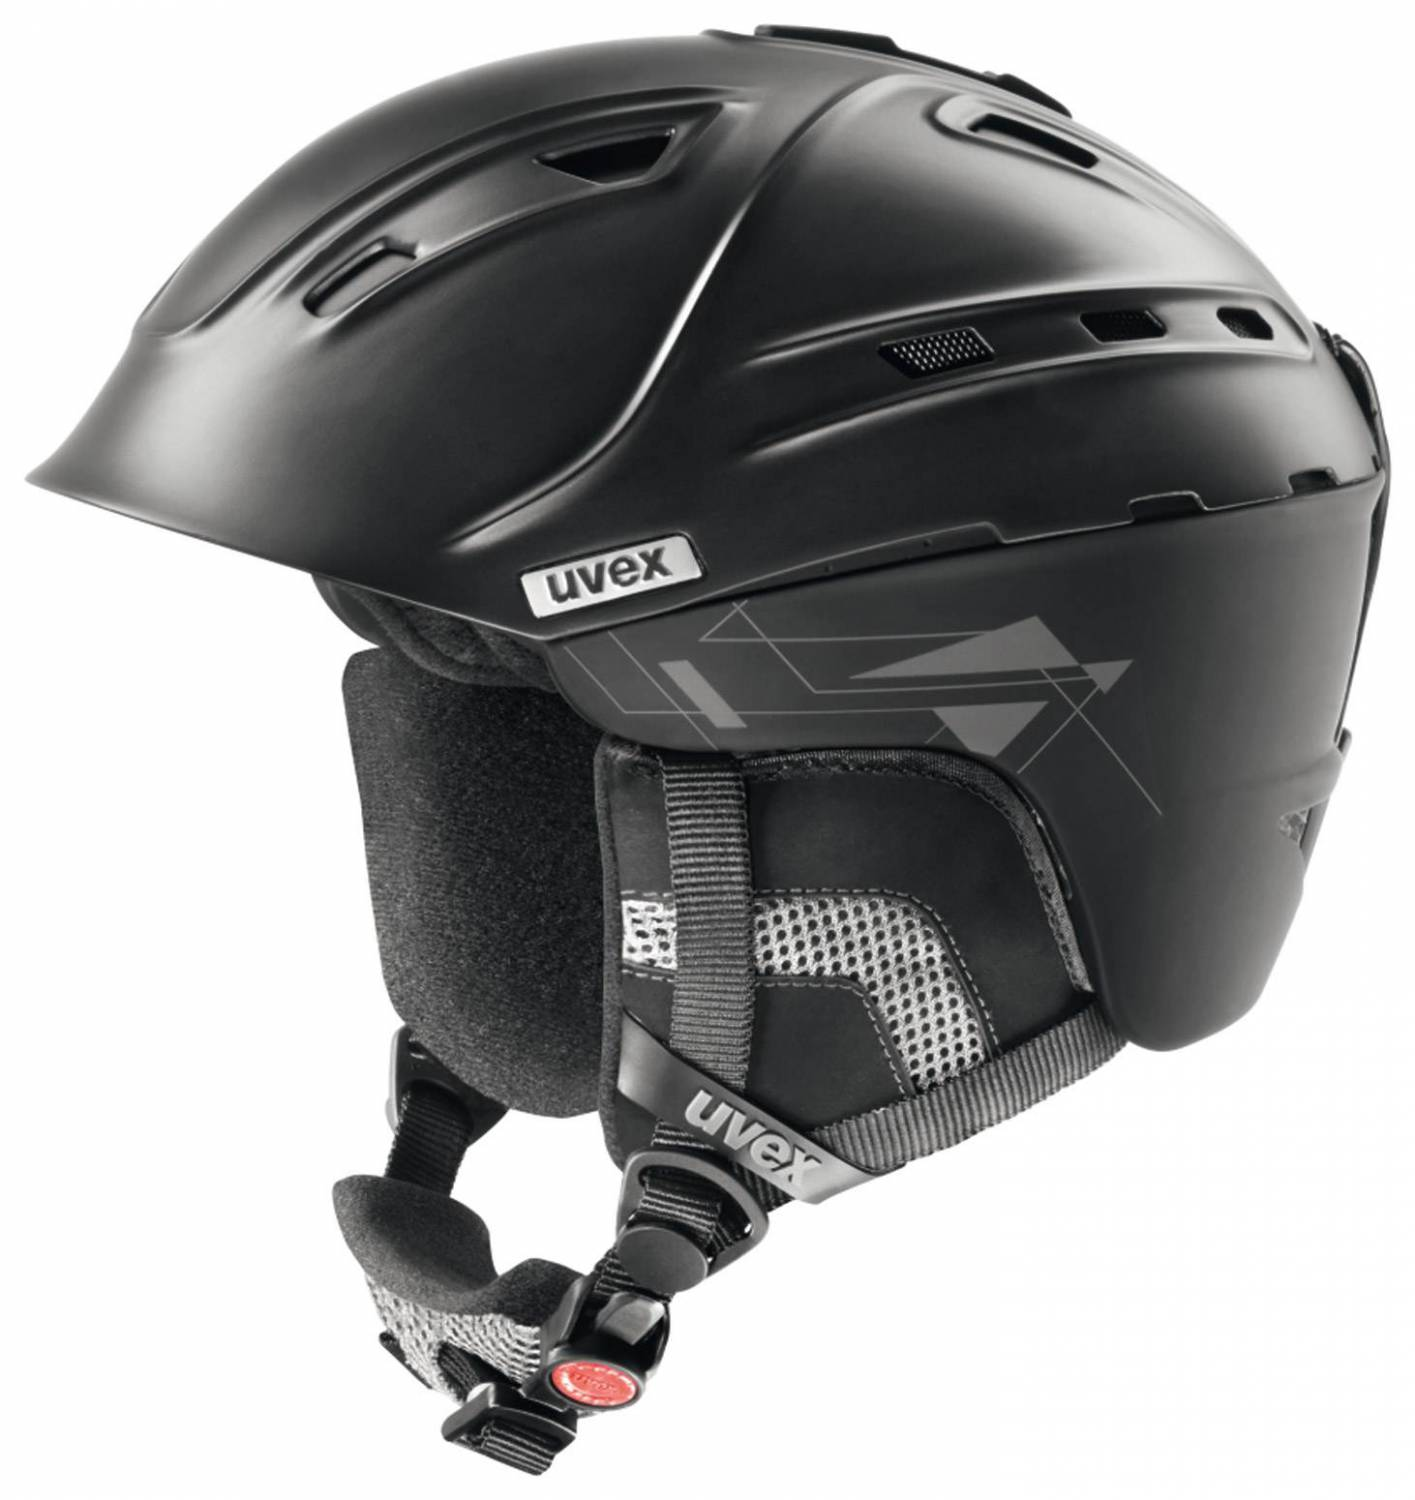 uvex-two-plus-skihelm-gr-ouml-szlig-e-59-61-cm-20-black-mat-